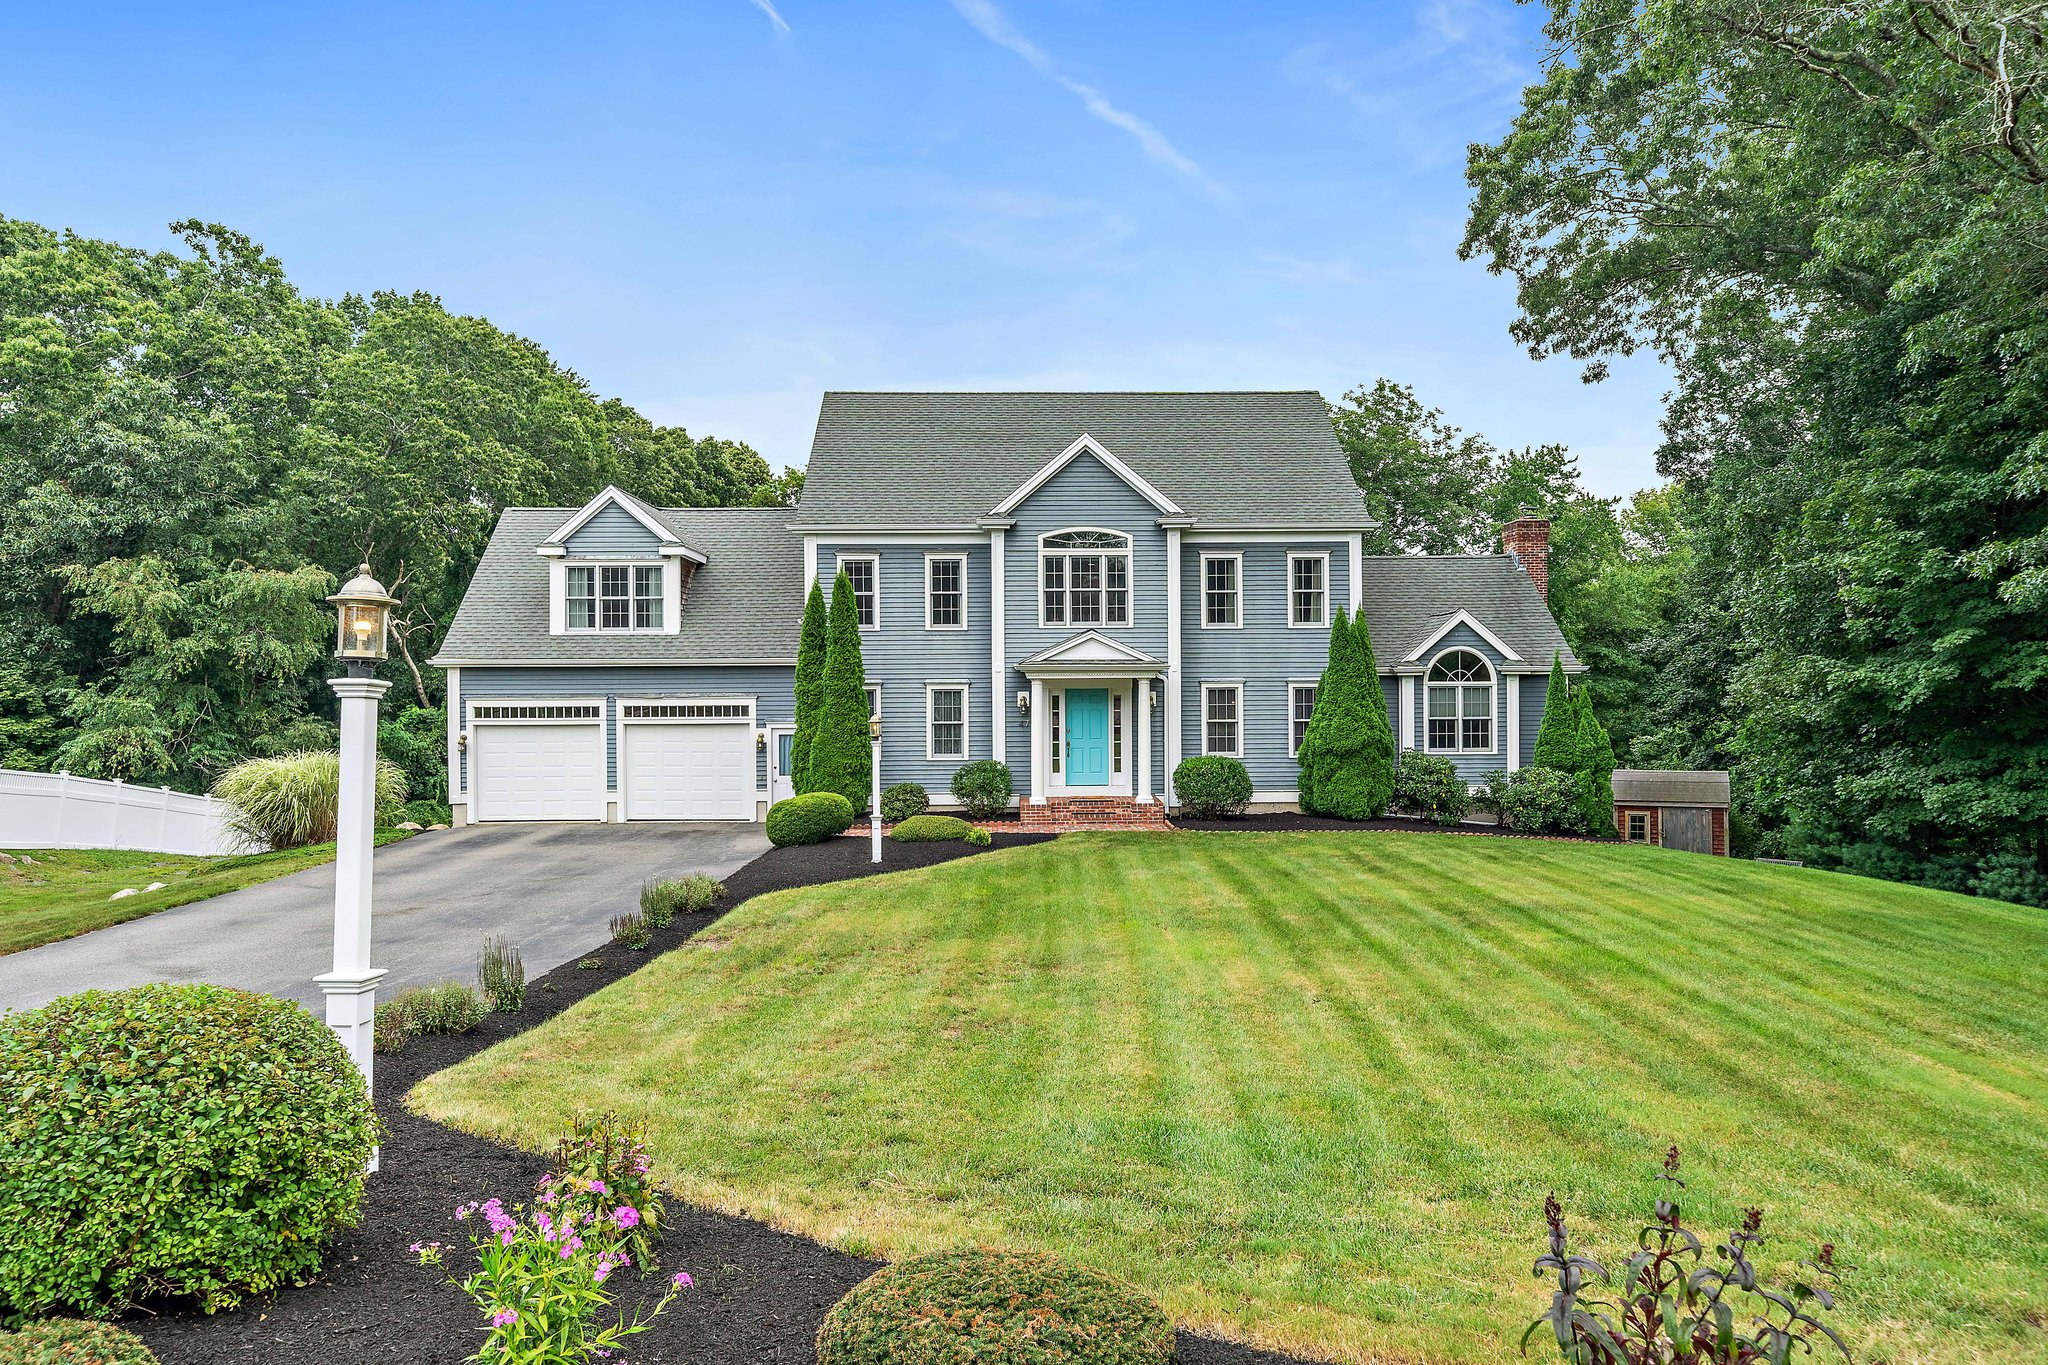 47 Townsend Woods Dr, Hanover, MA 02339, USA Photo 3